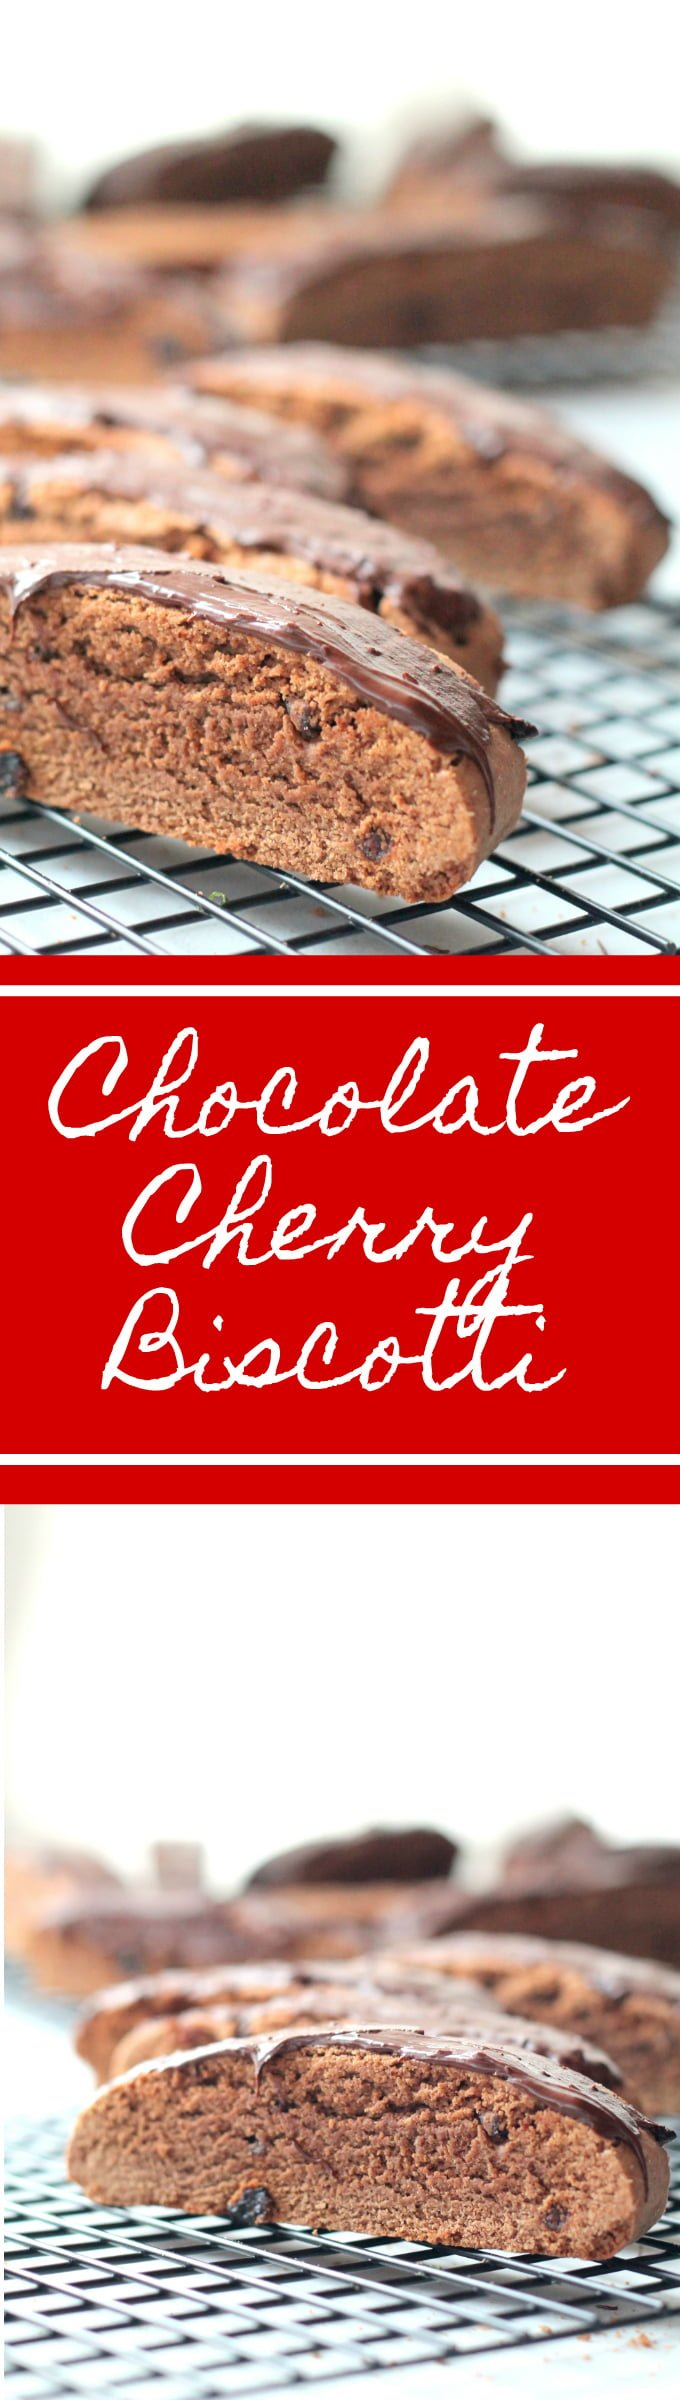 Chocolate Cherry Biscotti - Real: The Kitchen and Beyond